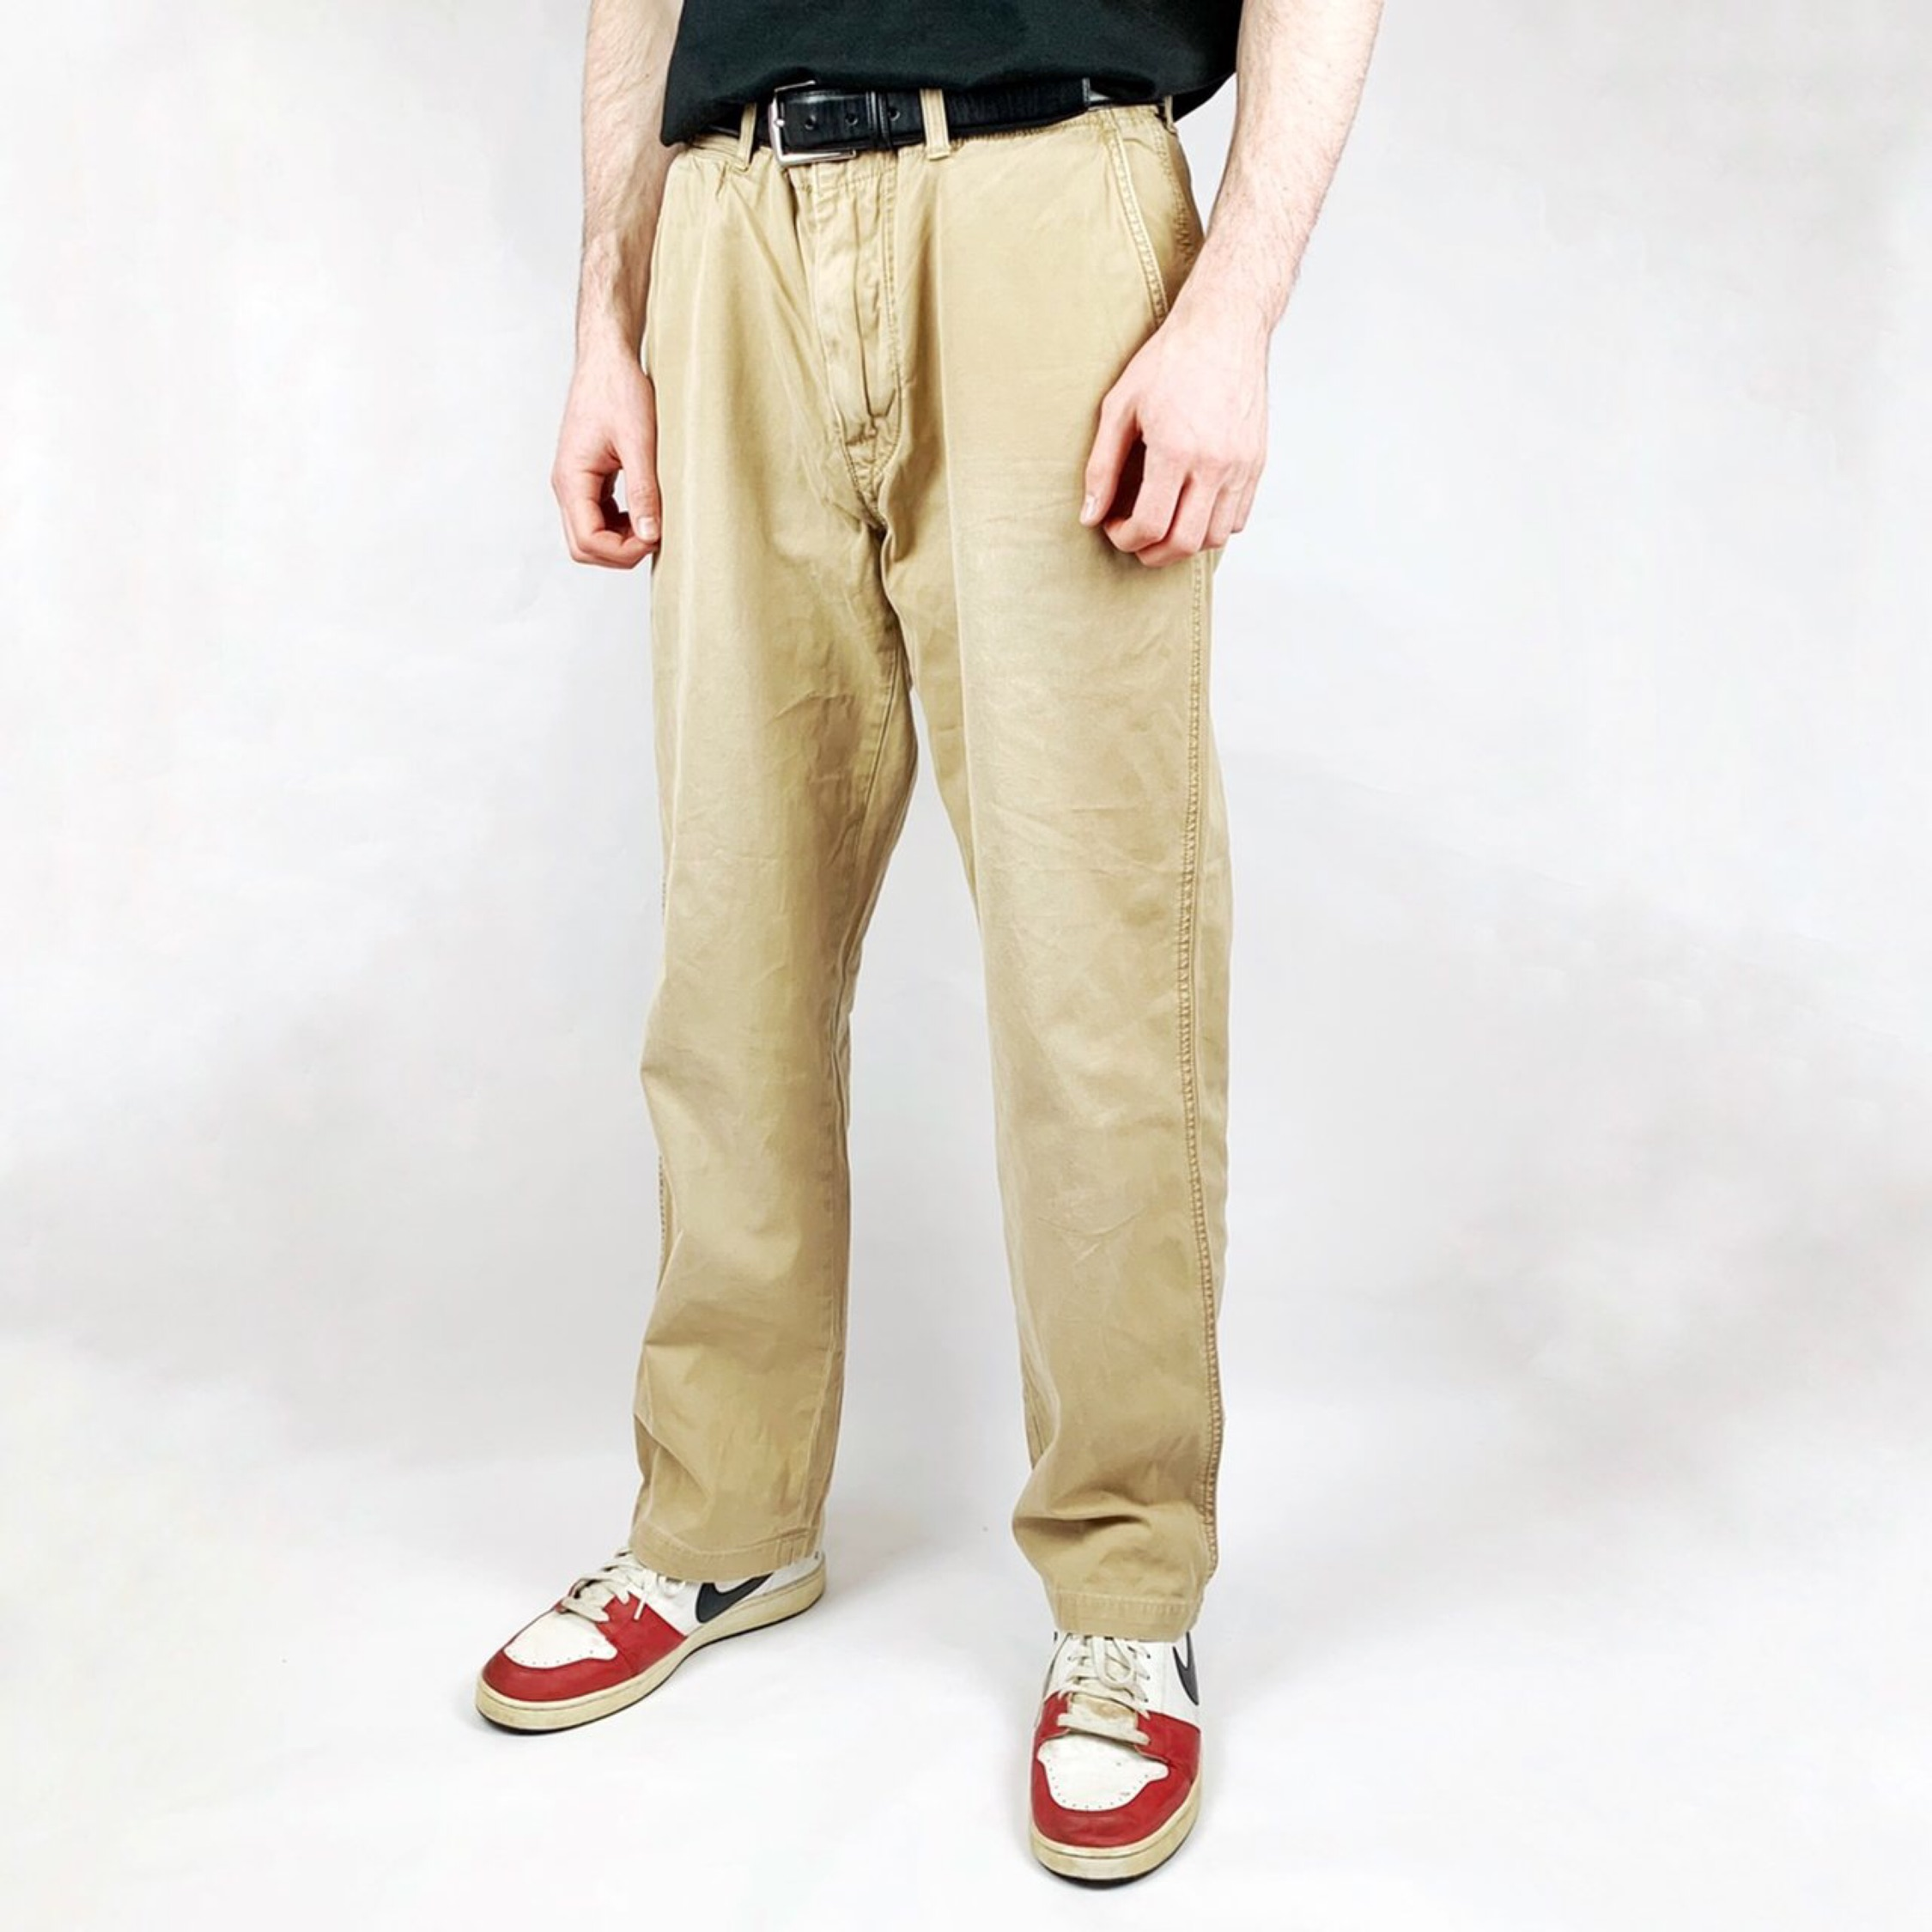 422ff9030f Vintage Polo Ralph Lauren Chino Pants